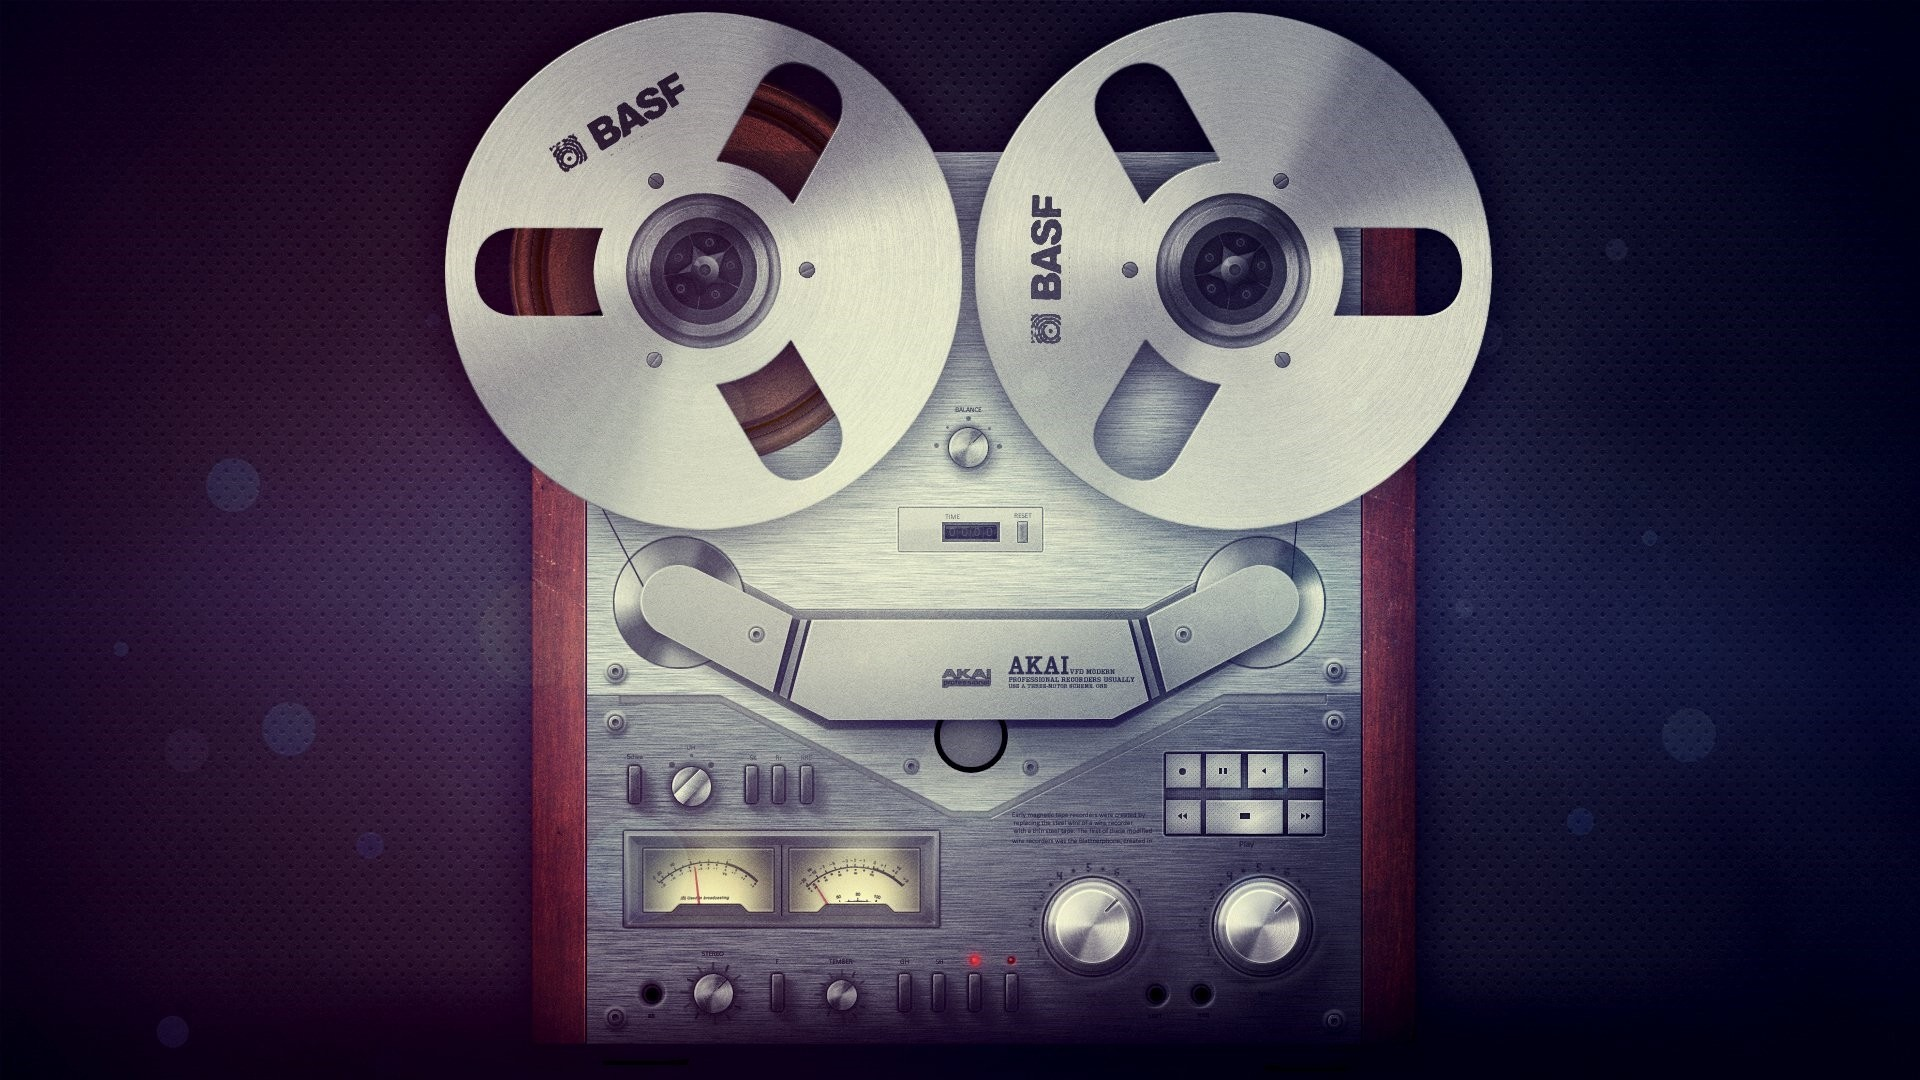 Cassette Tape hd desktop wallpaper